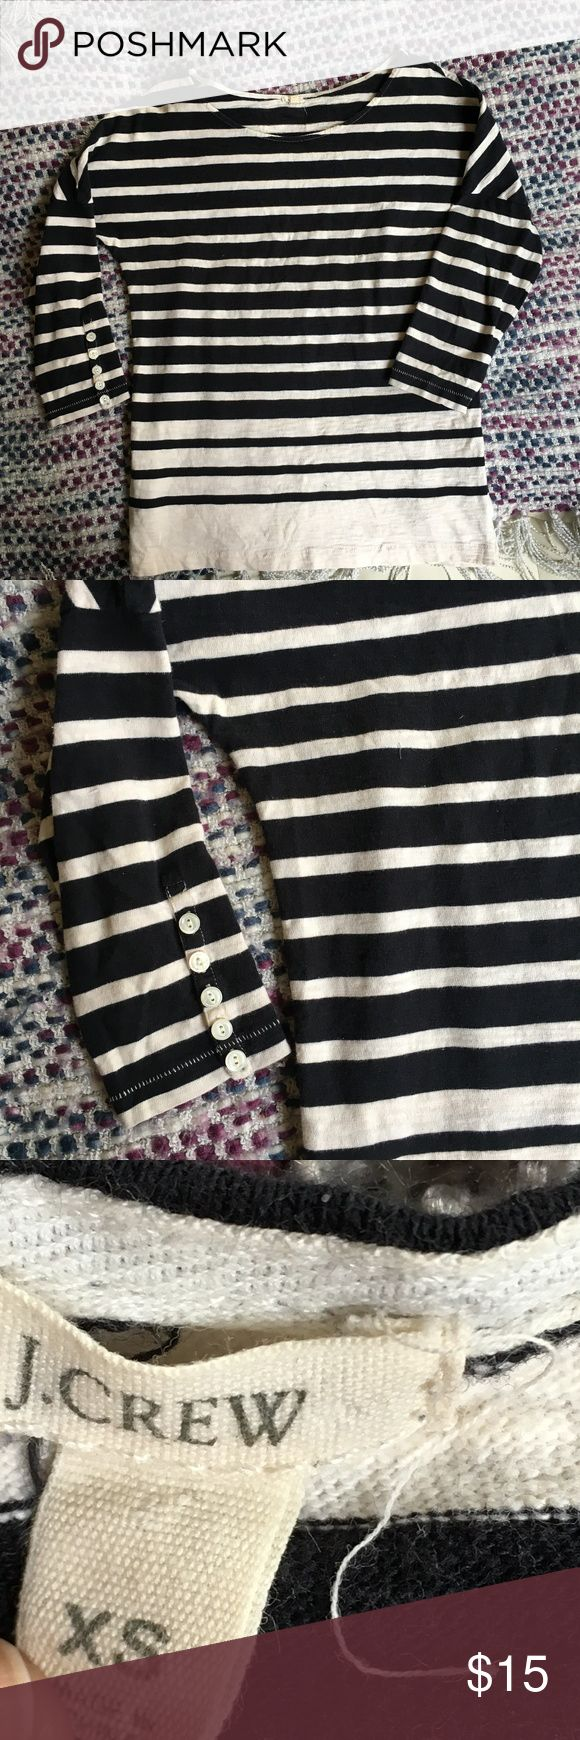 J. Crew ¾ Sleeve Navy and White Sweater J. Crew ¾ Sleeve Navy and White Sweater Stripes are dark navy and cream white.  Five buttons located on the end of each sleeve, all intact.  Size XS. J. Crew Sweaters Crew & Scoop Necks